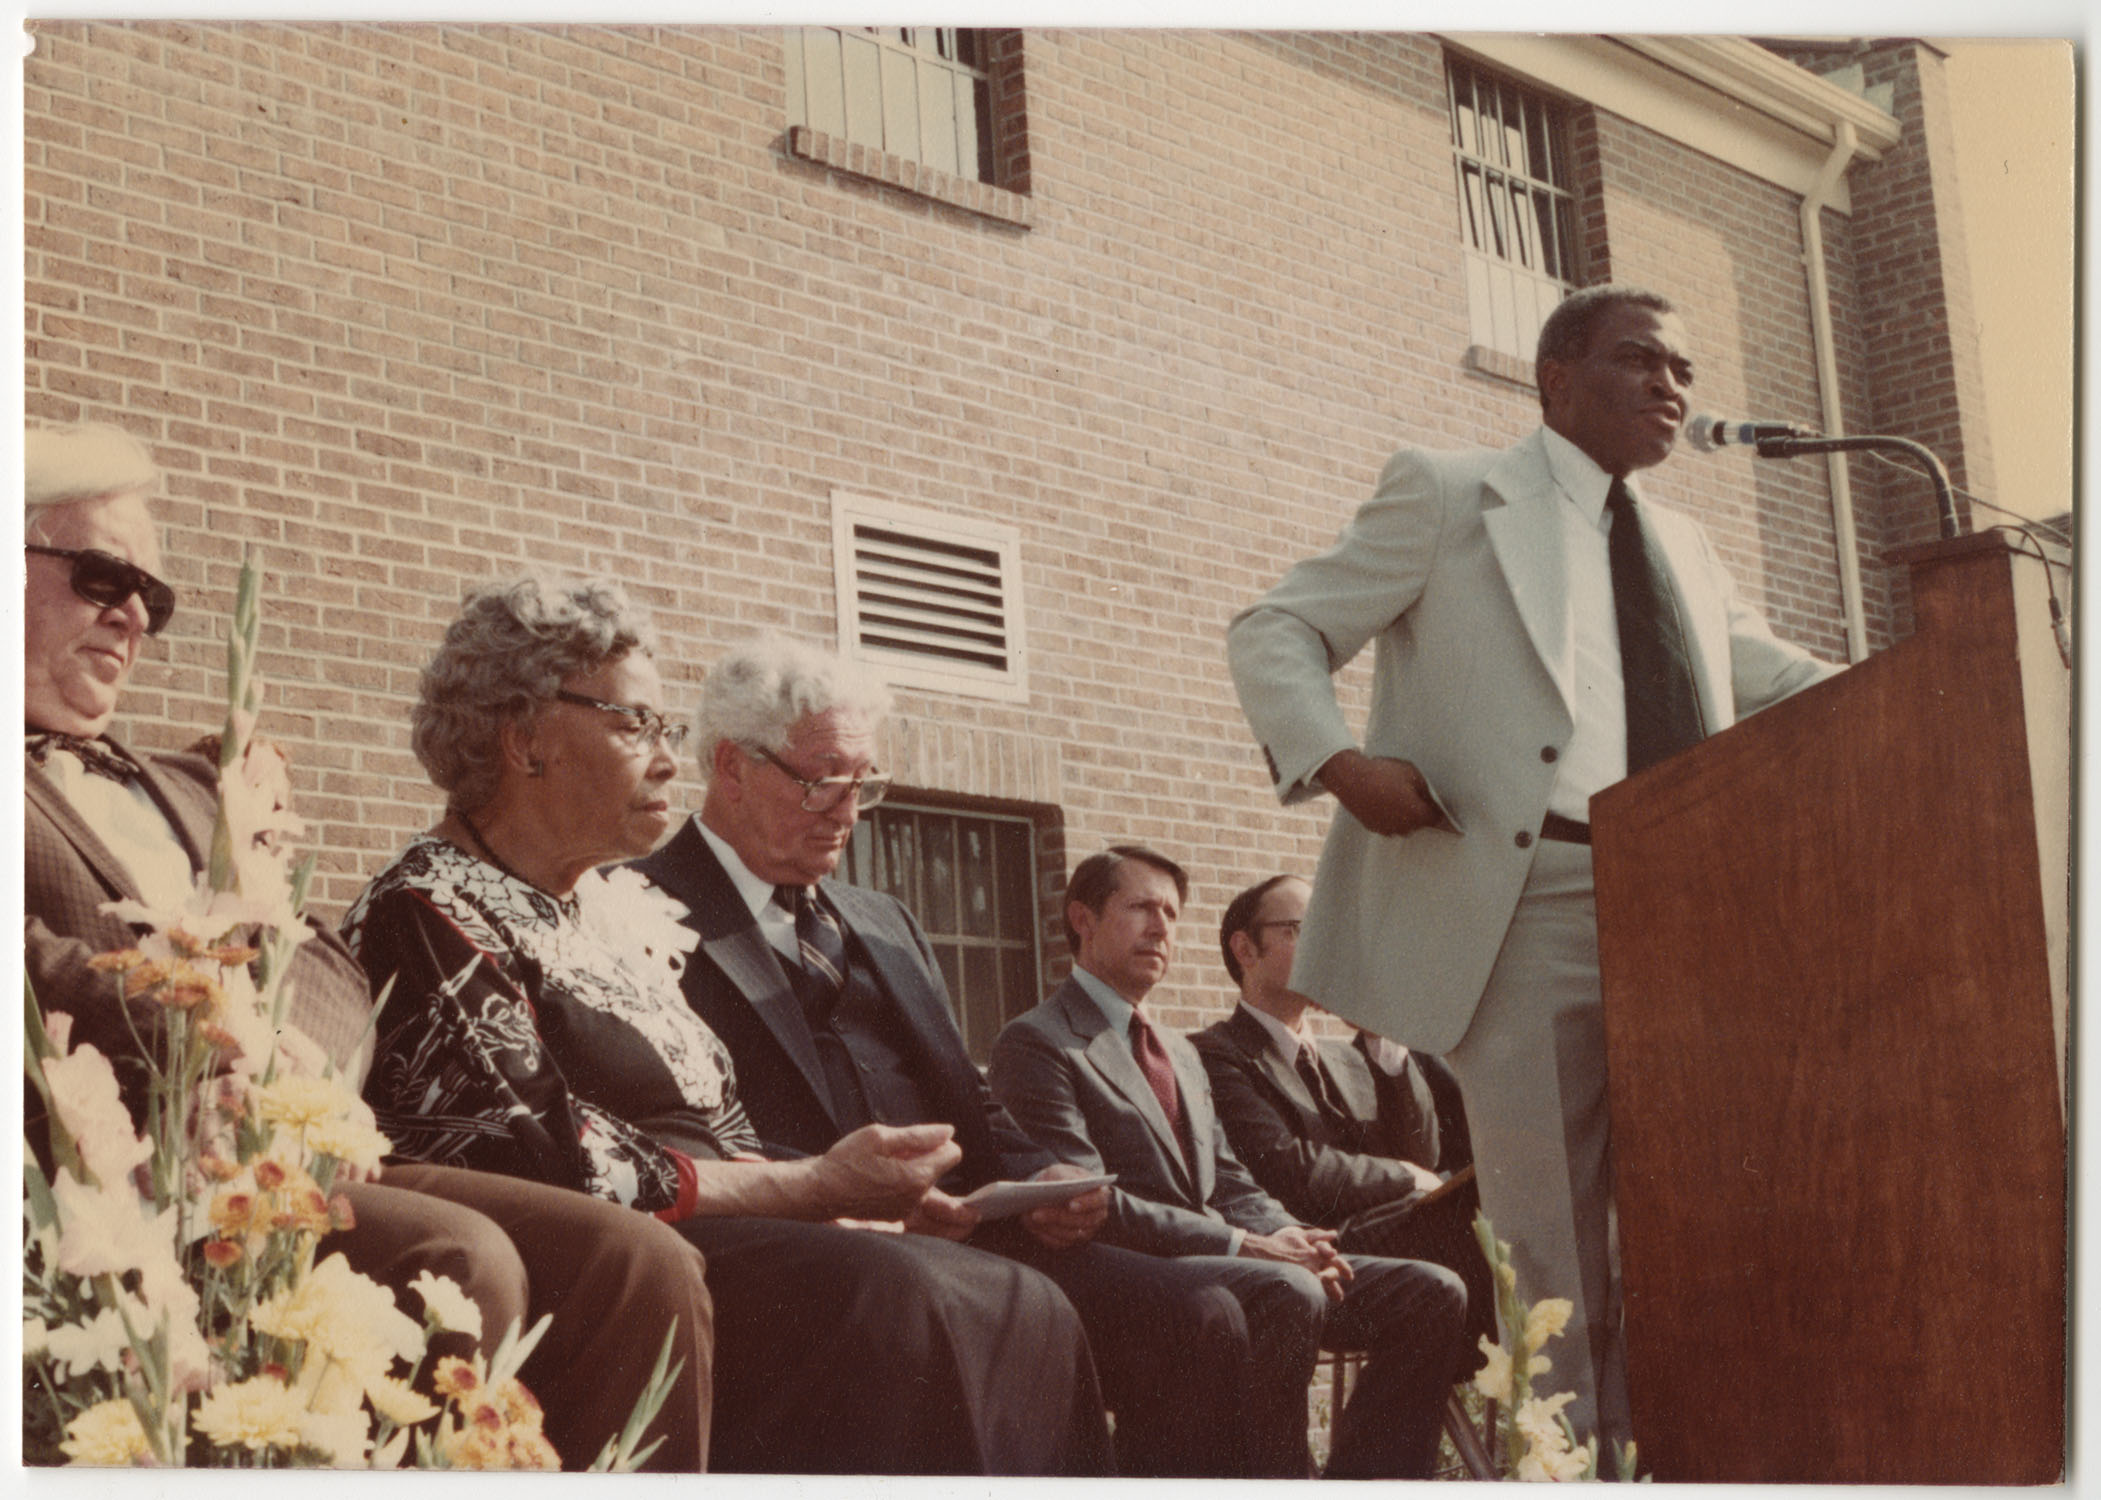 Lonnie Hamilton III, Septima P. Clark Day Care Center Ceremony, May 19, 1978